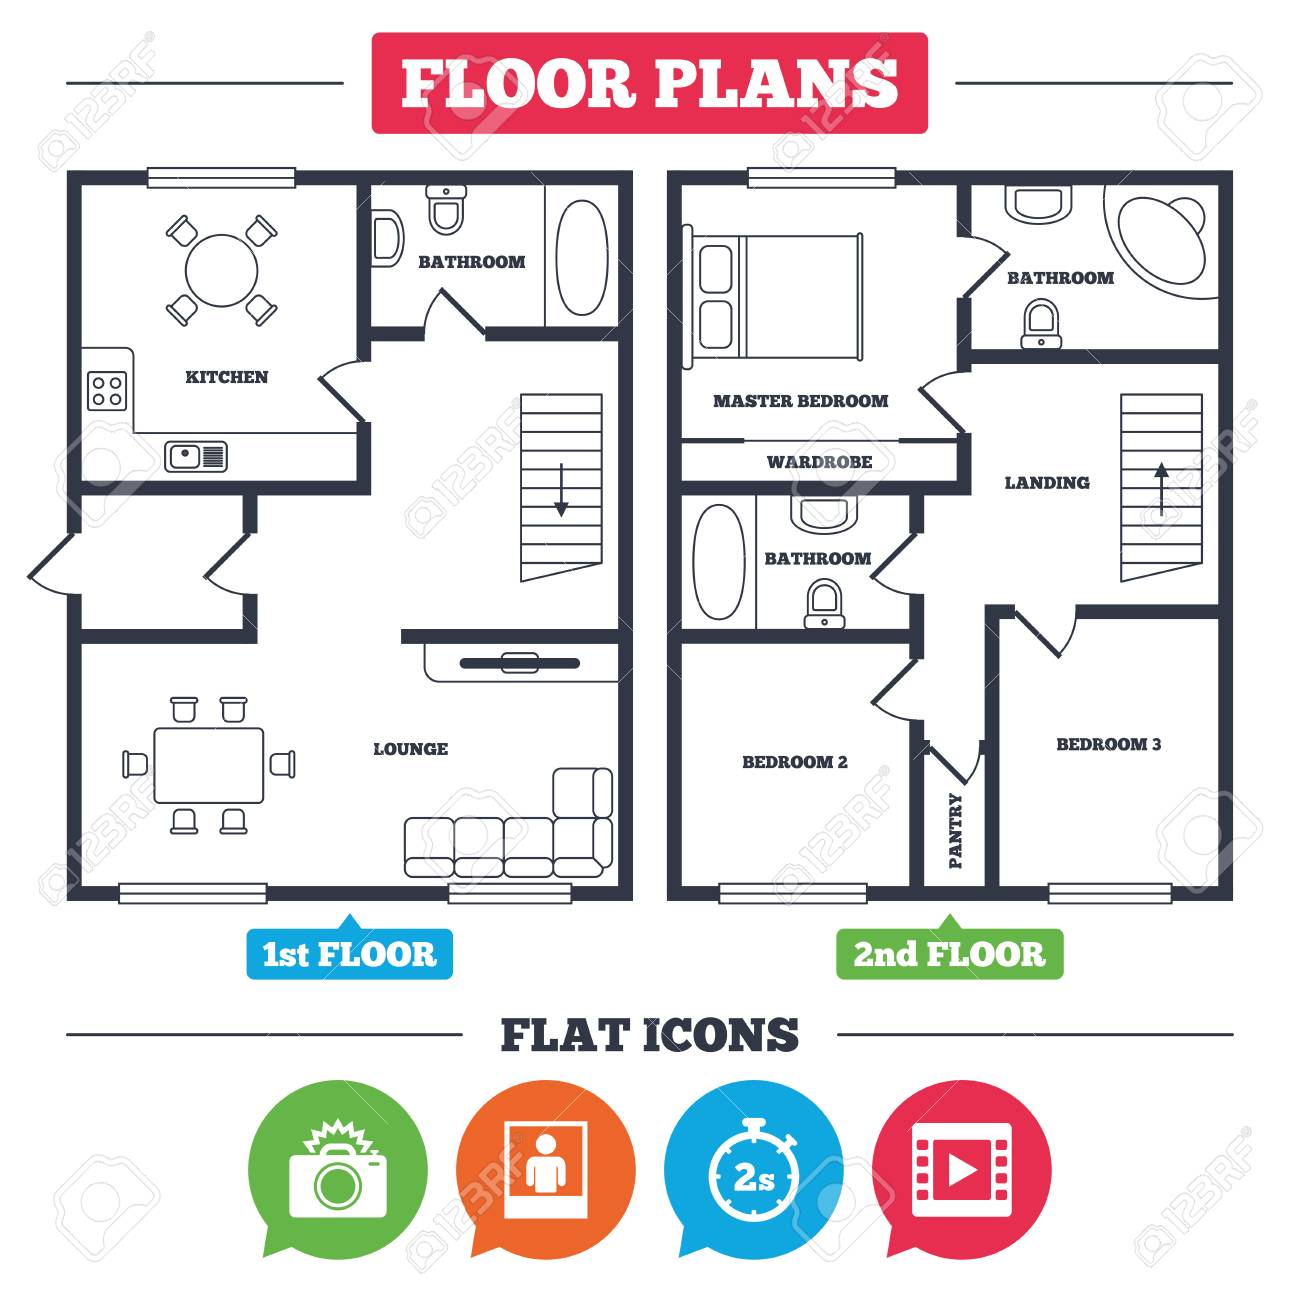 Lovely Architecture Plan With Furniture. House Floor Plan. Photo Camera Icon.  Flash Light And